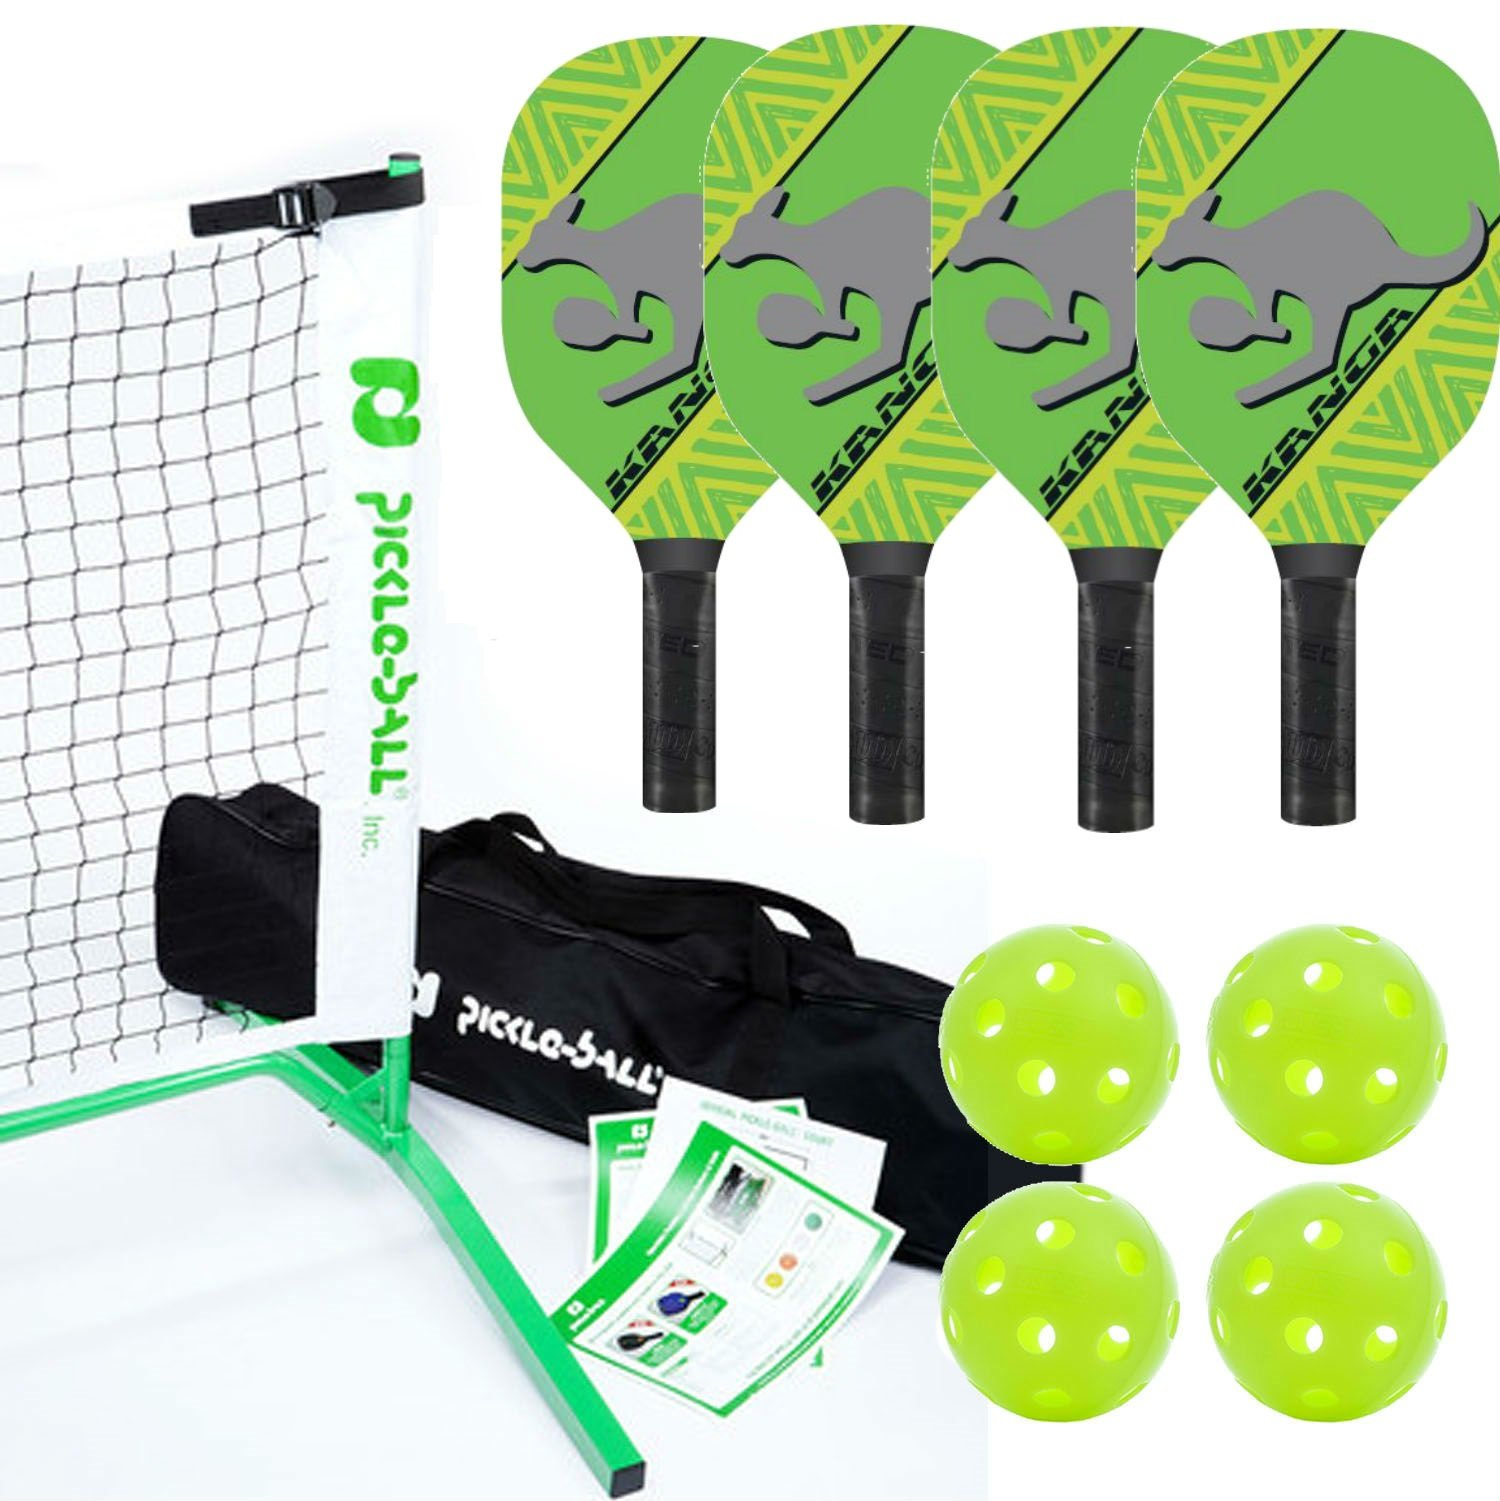 Kanga Pickleball Net, Paddle and Ball Set (Includes Metal Frame + Net + 4 paddles + 4 balls + Rules Sheet in Carry Bag) by PickleballCentral